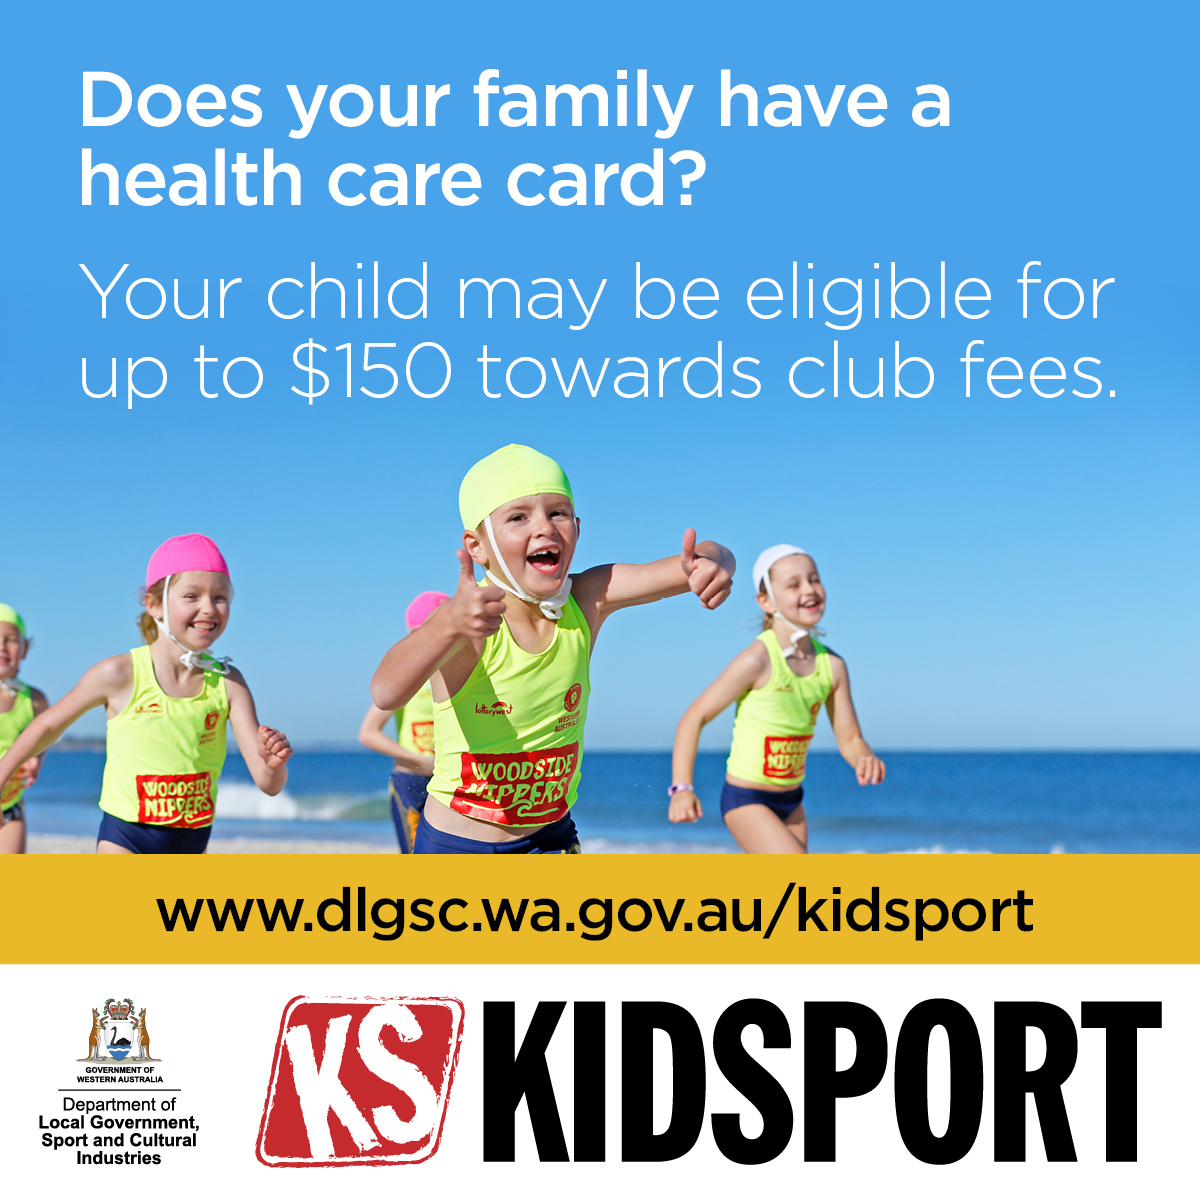 KidSport - Your child may be eligible for up to $150 towards club fees